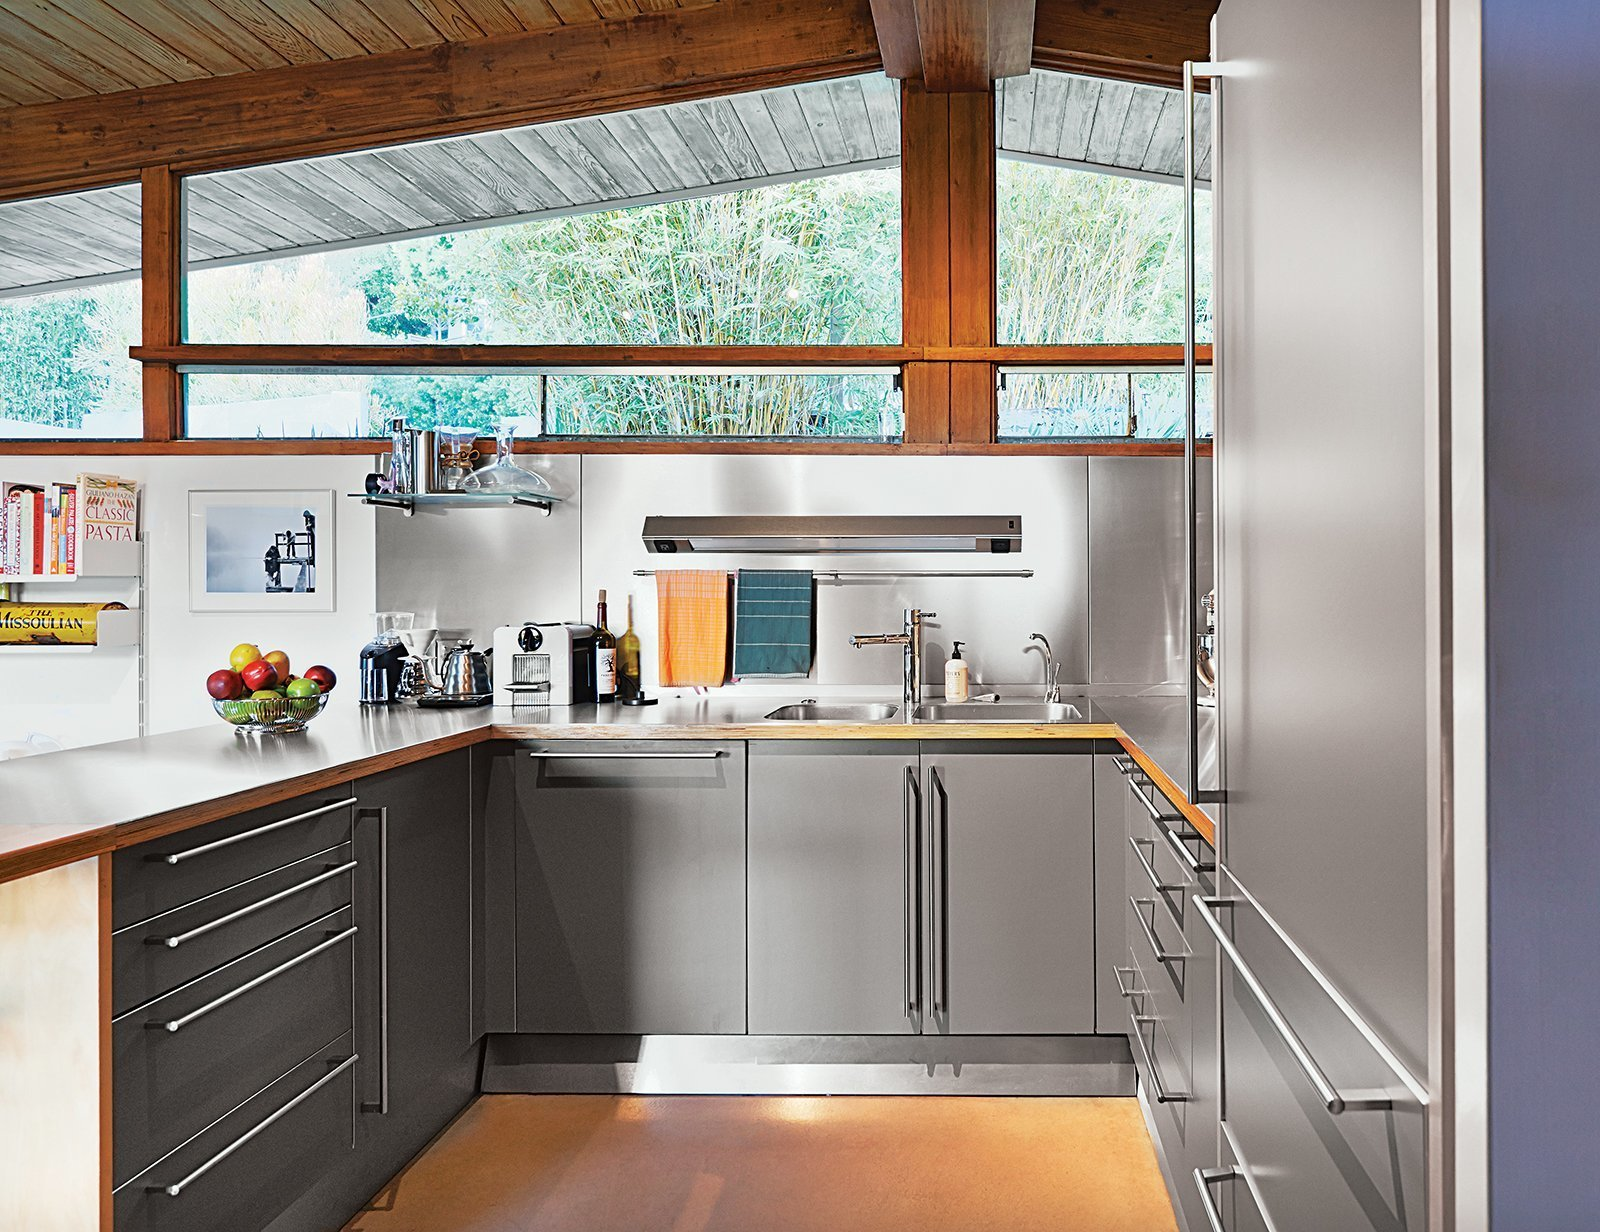 Kitchen, Wood Counter, Metal Cabinet, Metal Backsplashe, And Drop In Sink  Stainless